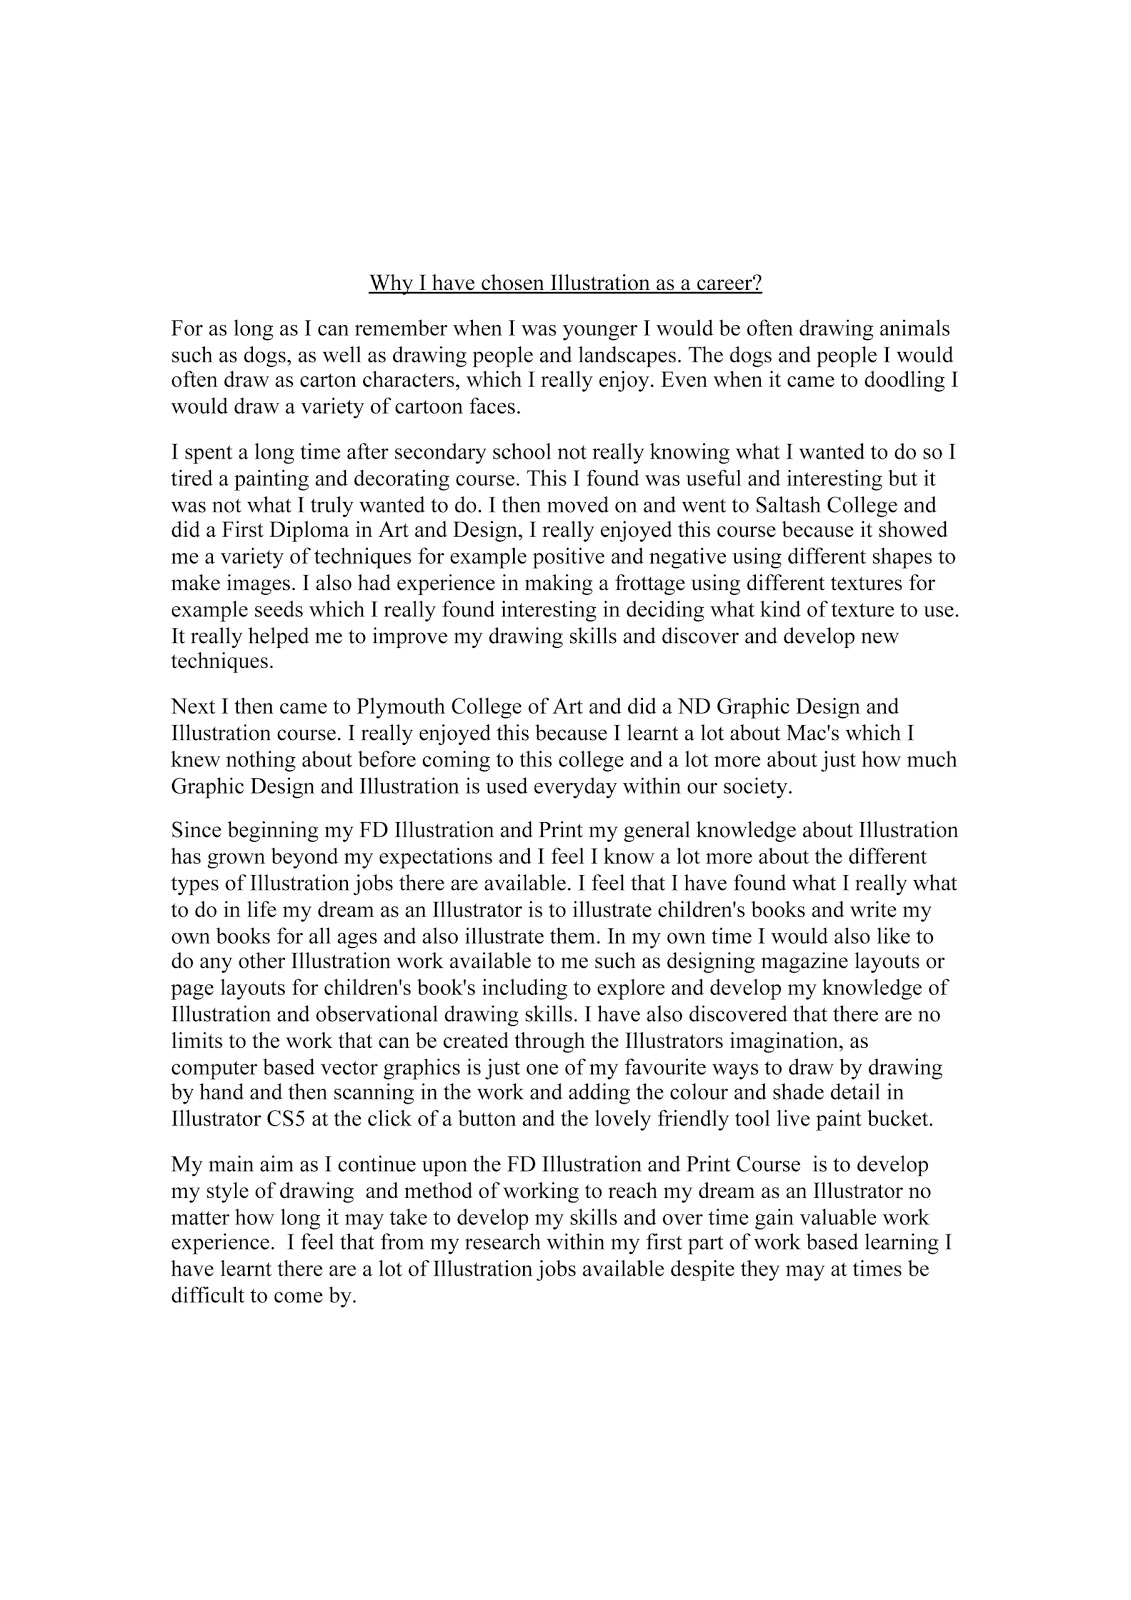 charlemagne essay the book essay the book essay odol ip book  the book essay the book essay odol ip book review essay my jim by book of